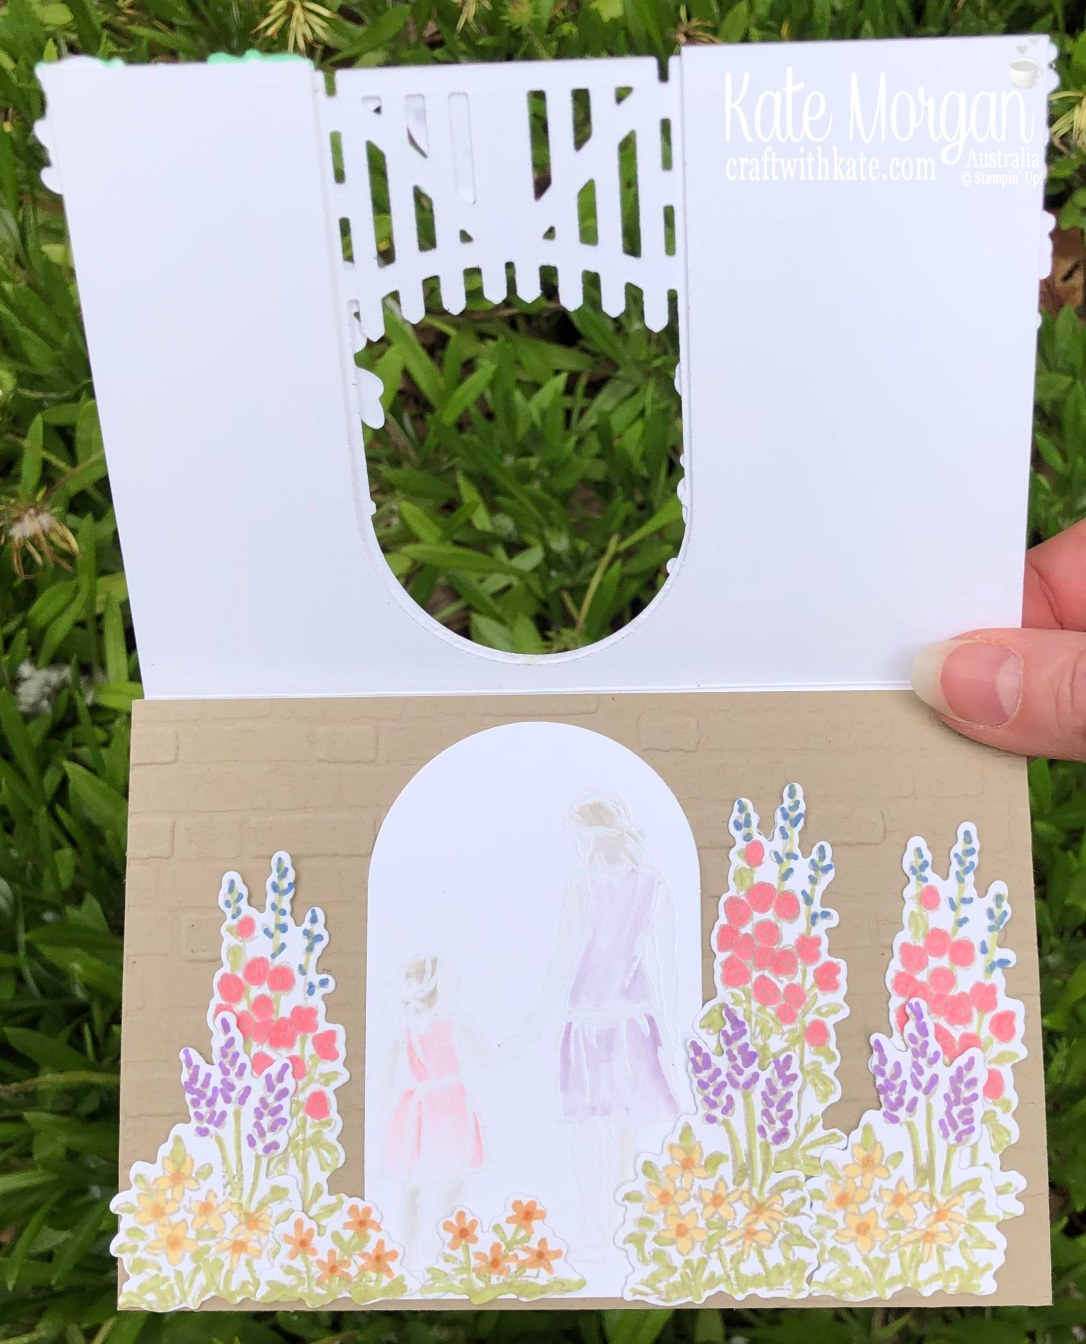 AWHT Tutorial using Stampin Up Grace's Garden & Beautiful Moments with Brick & Mortar 3D TIEF Mini 2020 by Kate Morgan, Australia inside